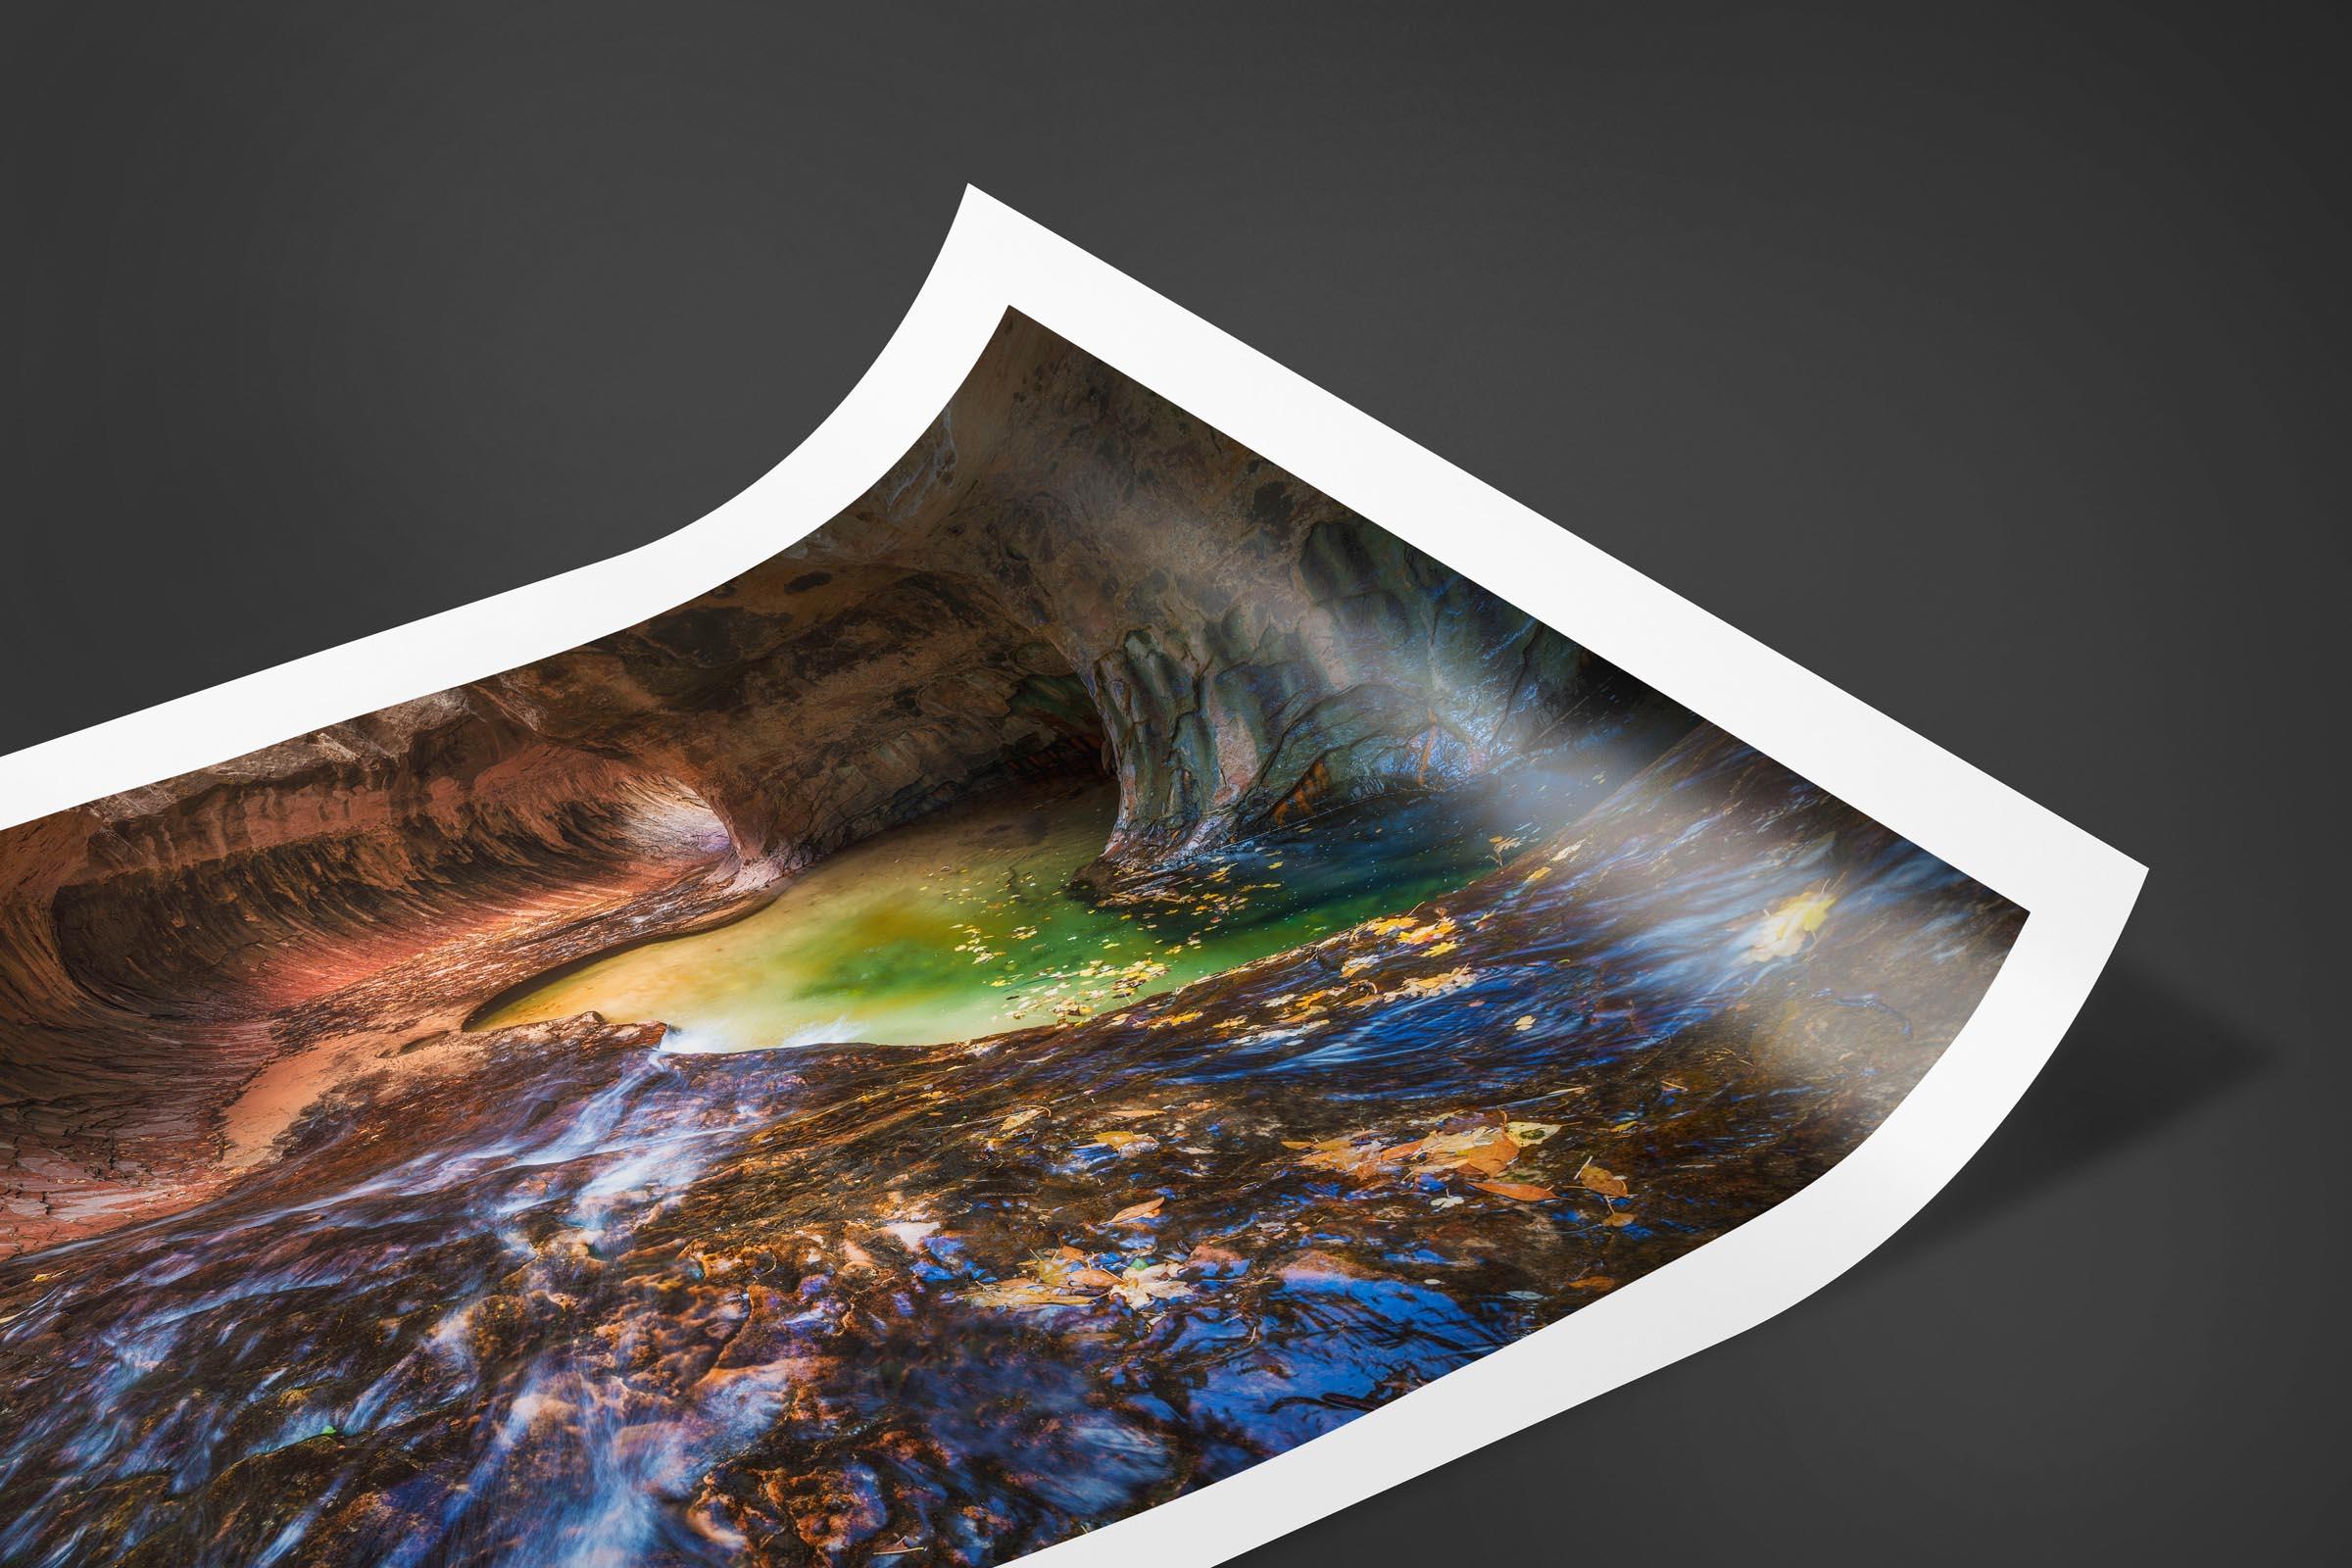 Fine art limited edition print of Subway in Zion, Utah by Brent Goldman Photography